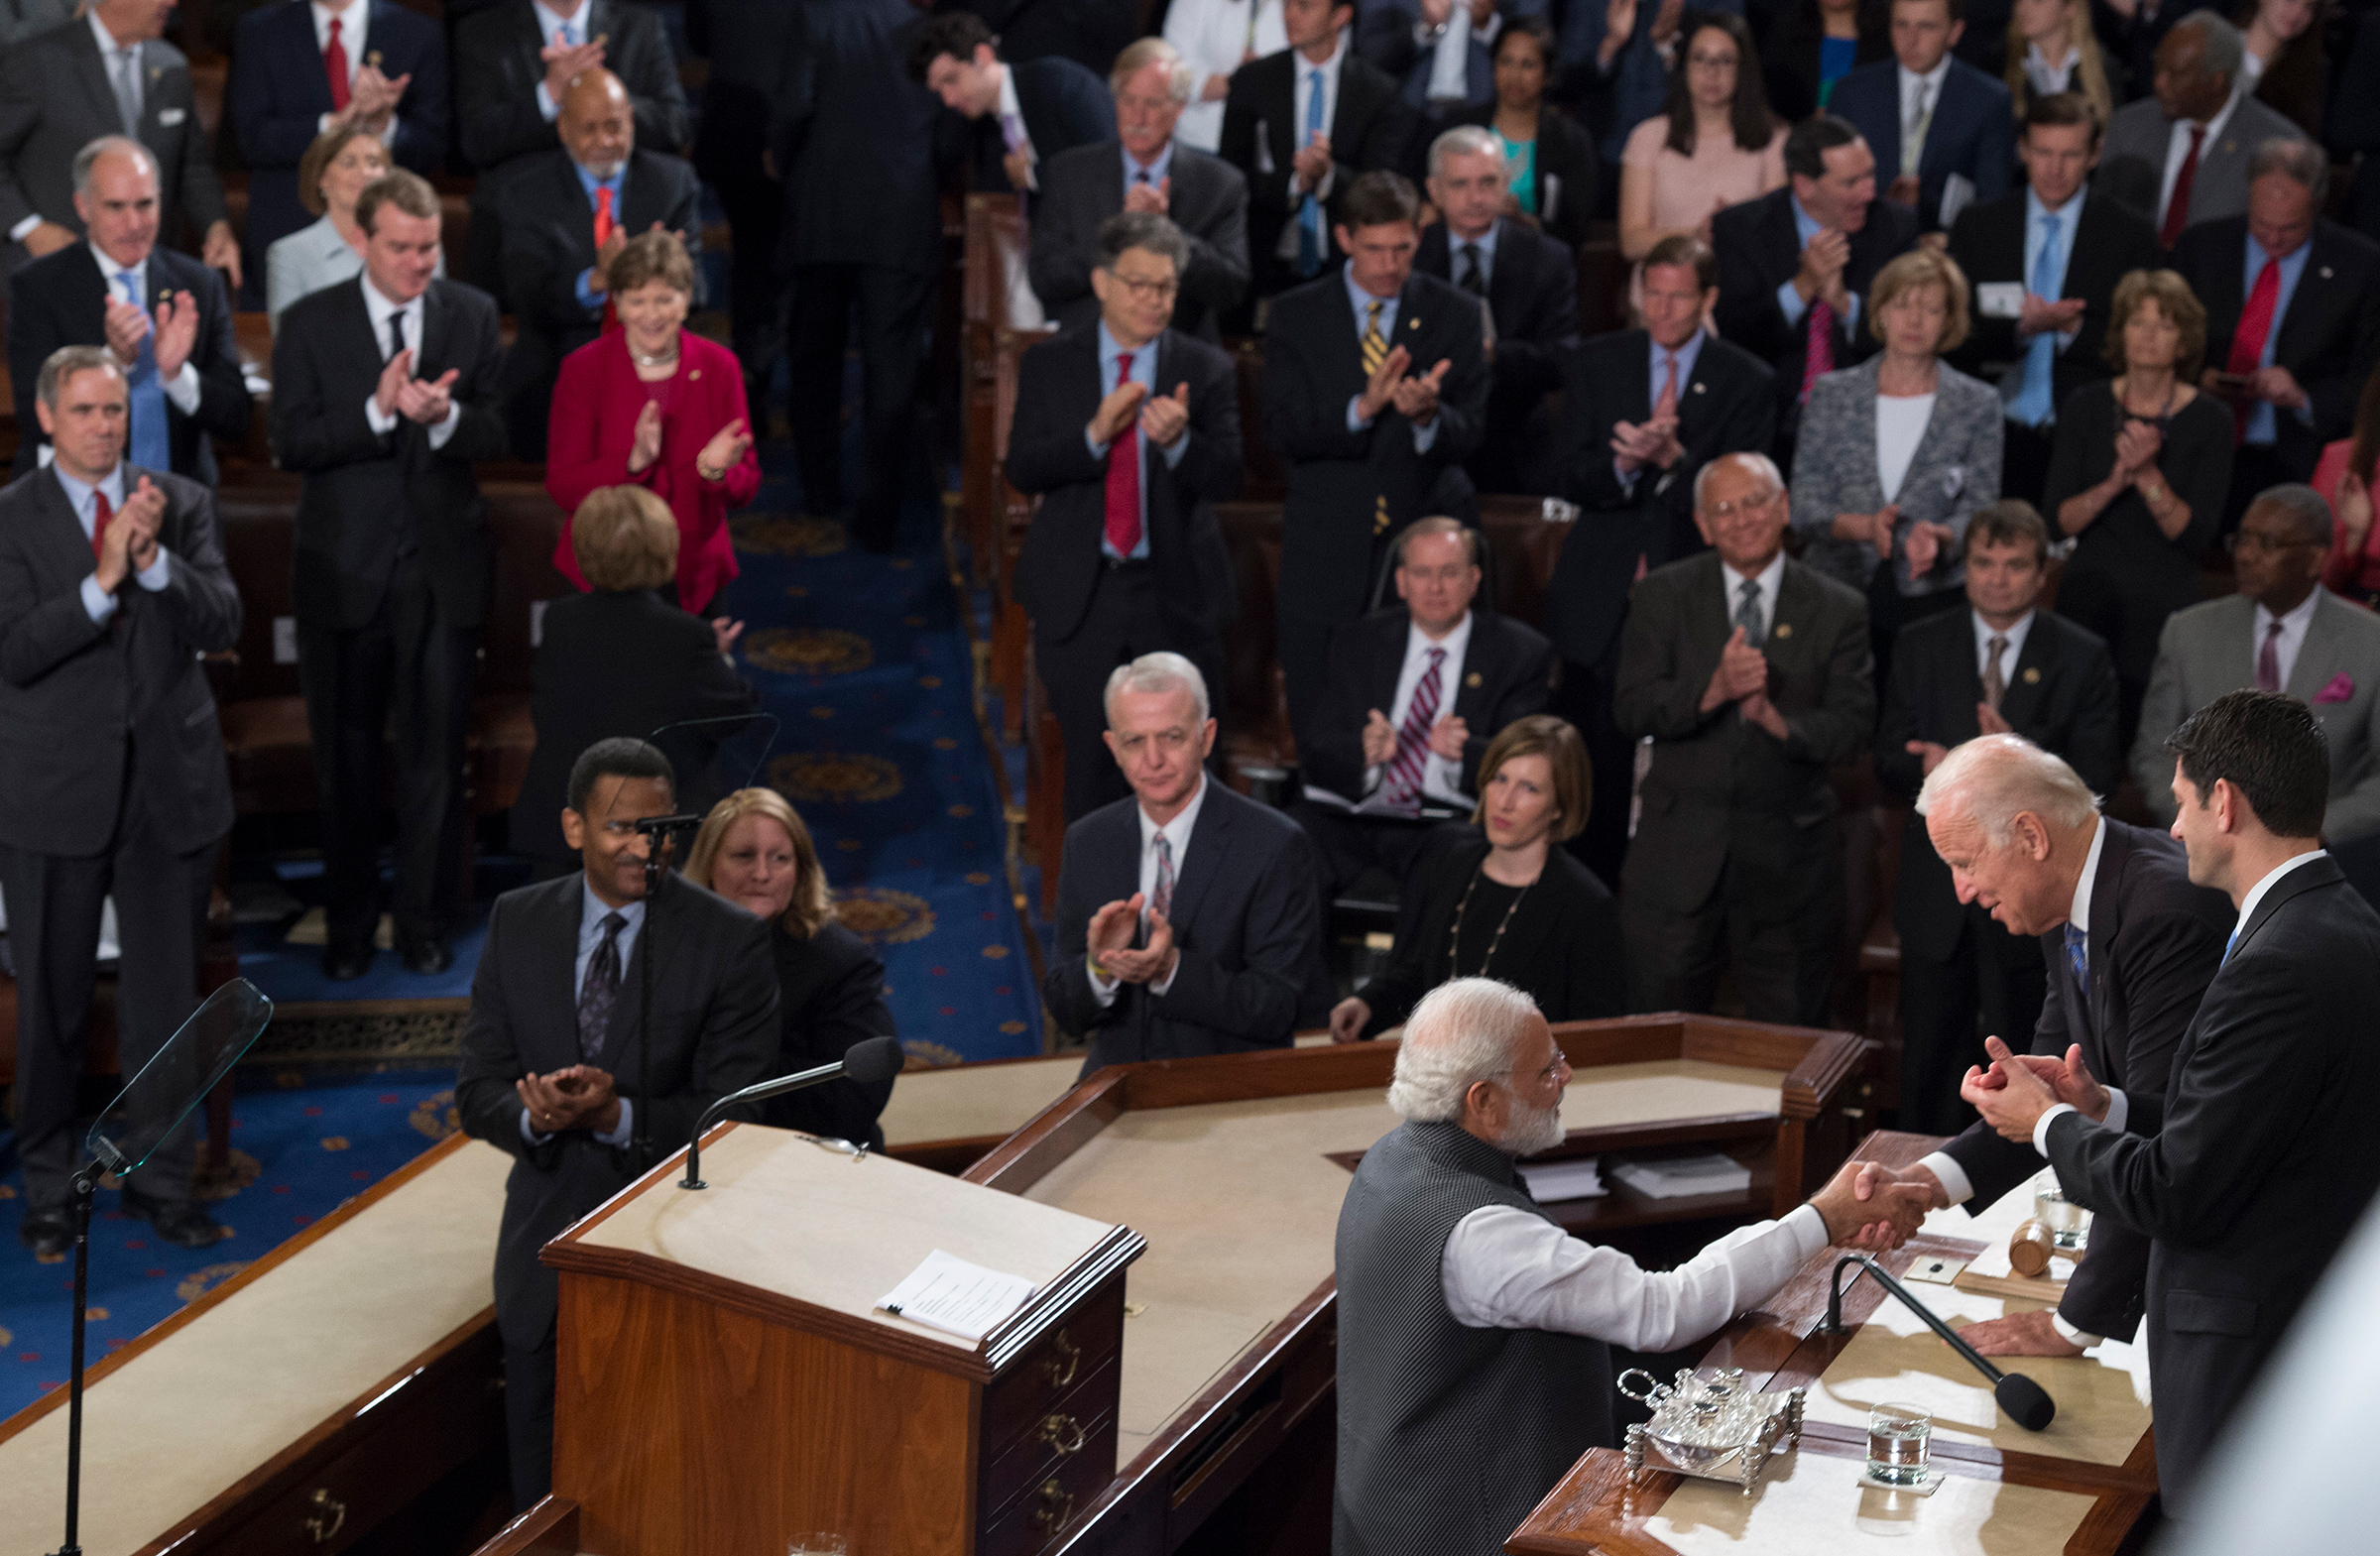 Indian Prime Minister Narendra Modi shakes Vice President Joe Biden's hand after addressing a joint session of Congress on Capitol Hill on June 8, 2016.